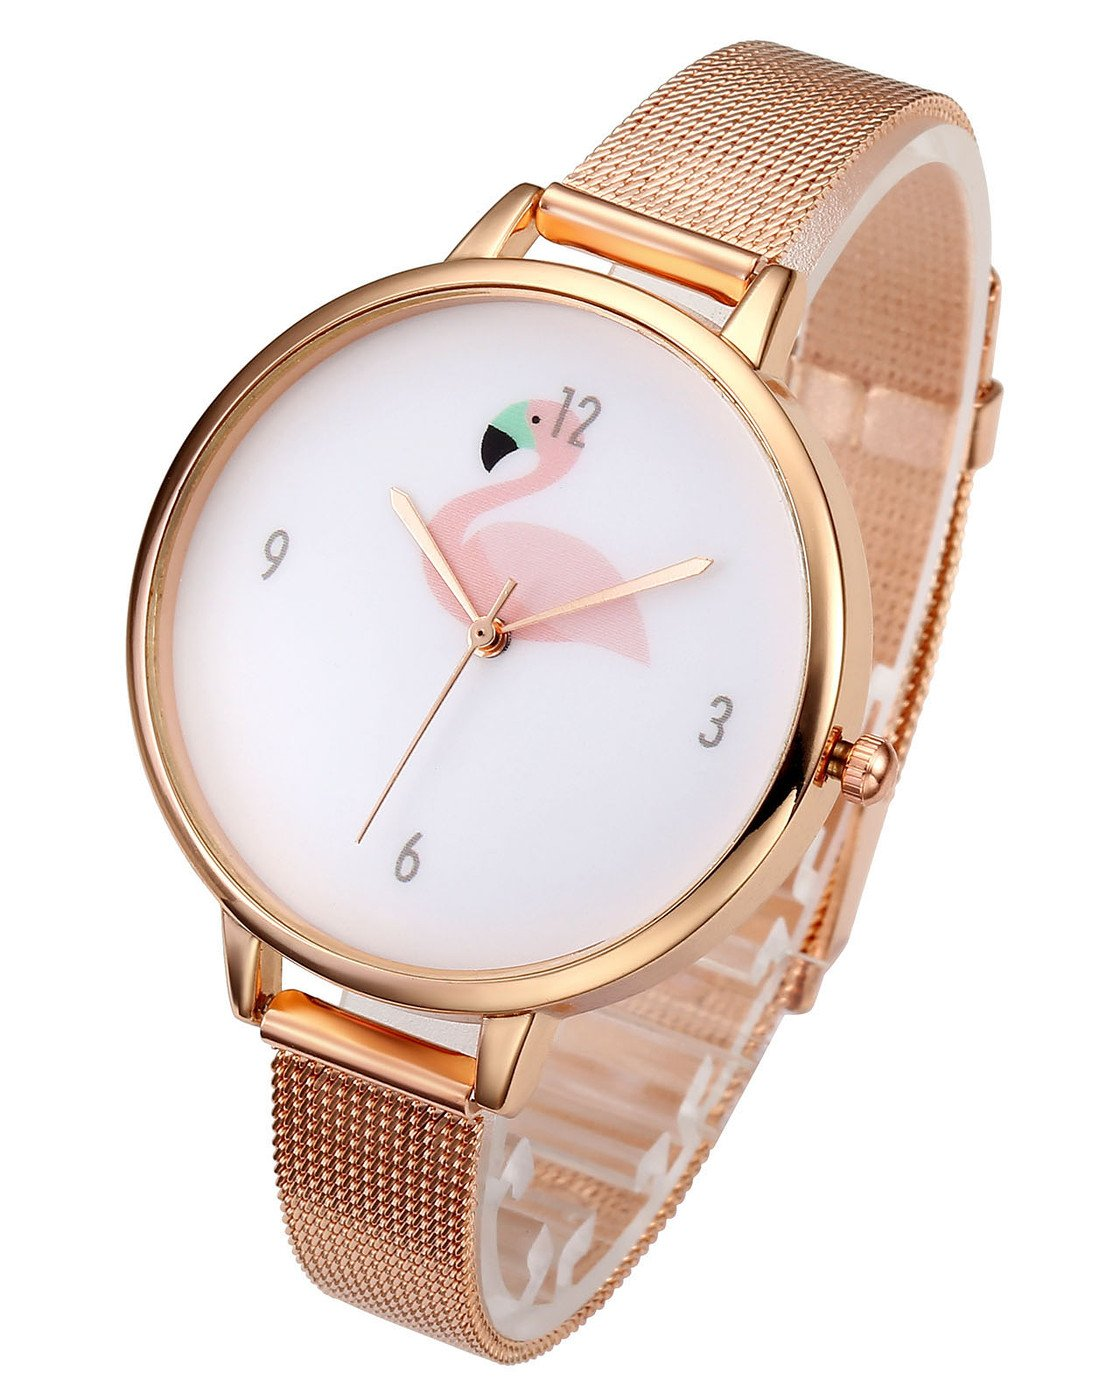 Top Plaza Womens Fashion Rose Gold Tone Analog Quartz Bracelet Wrist Watch, Cute Pink Flamingo Pattern, Mesh Metal Thin Band